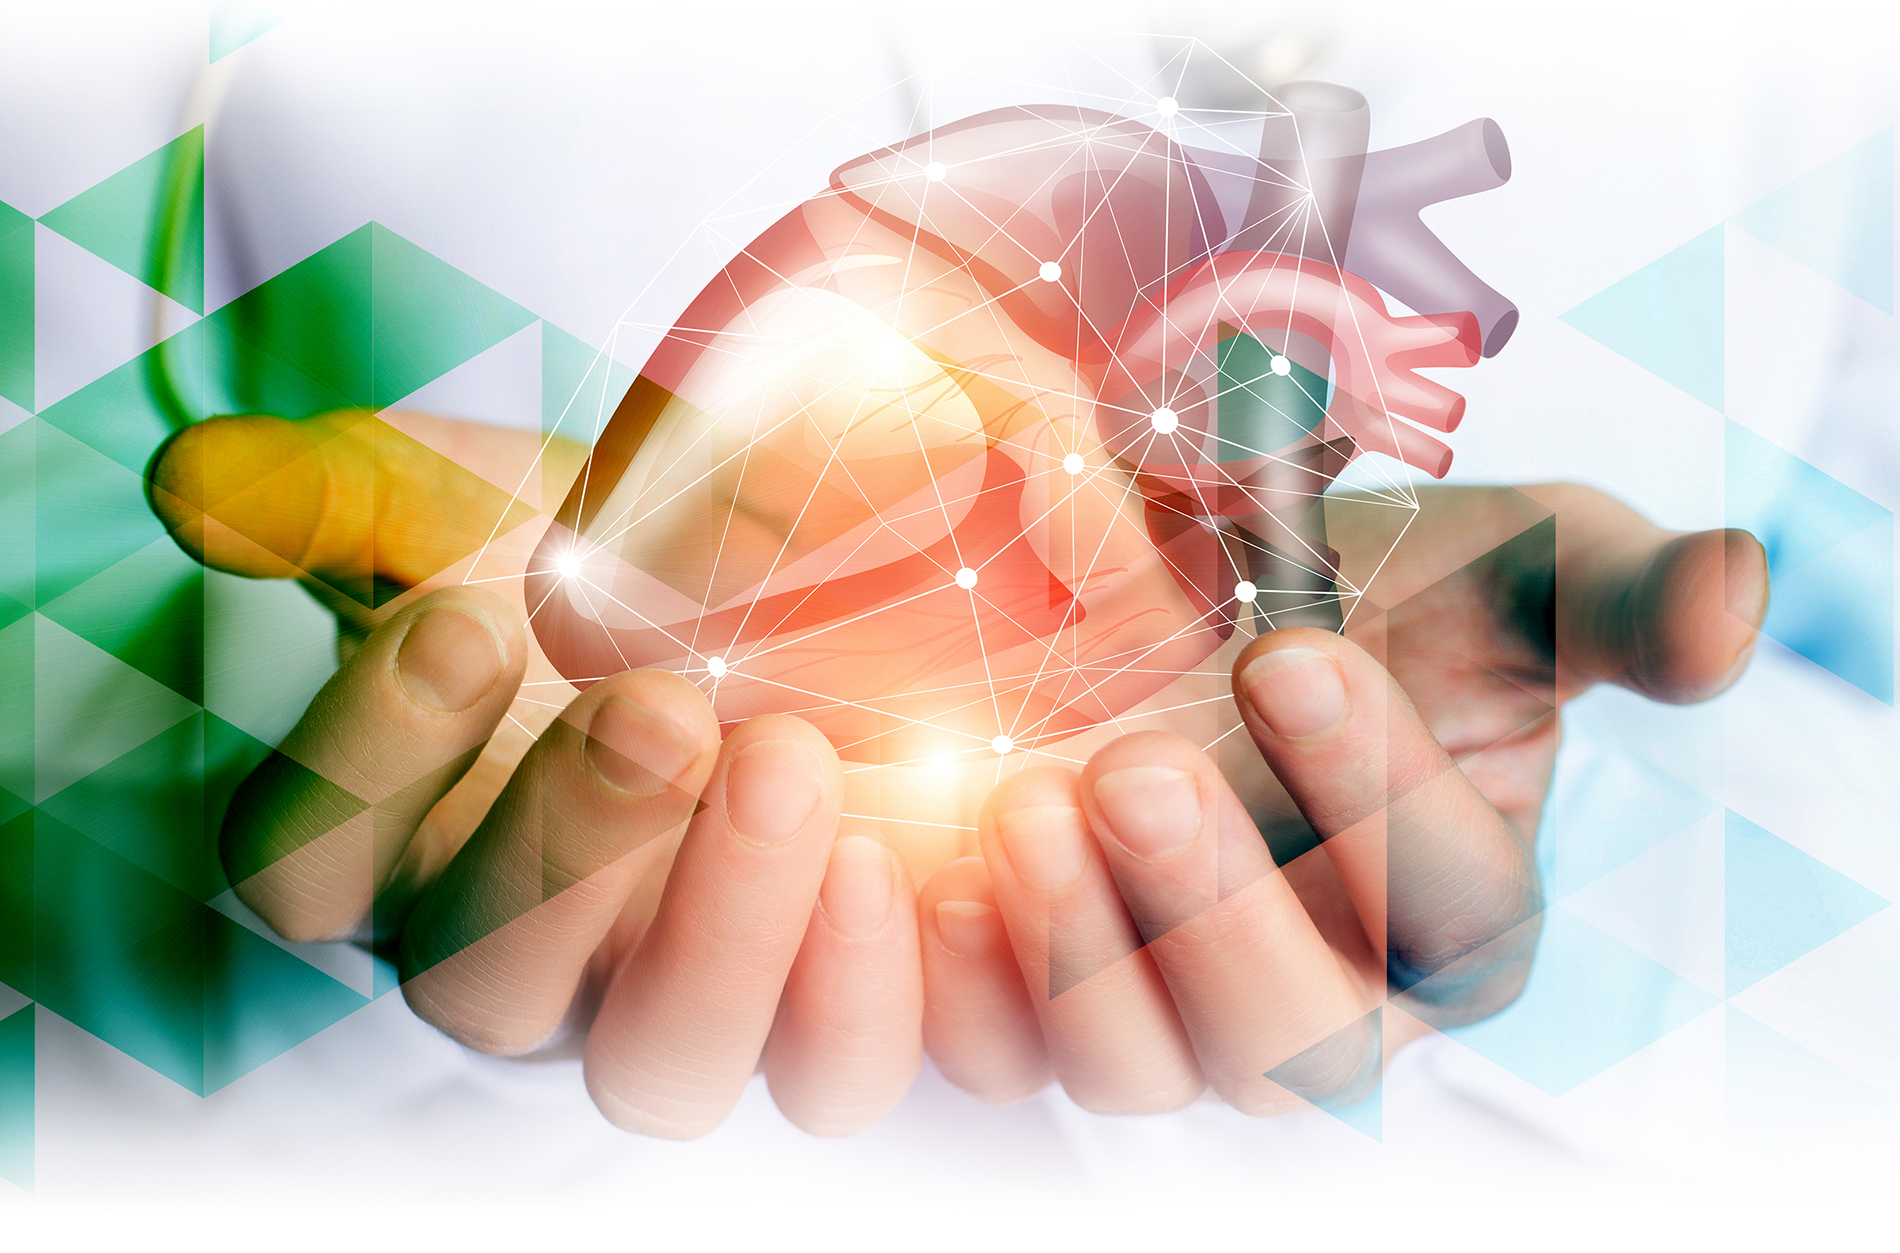 Hands holding abstract model of heart